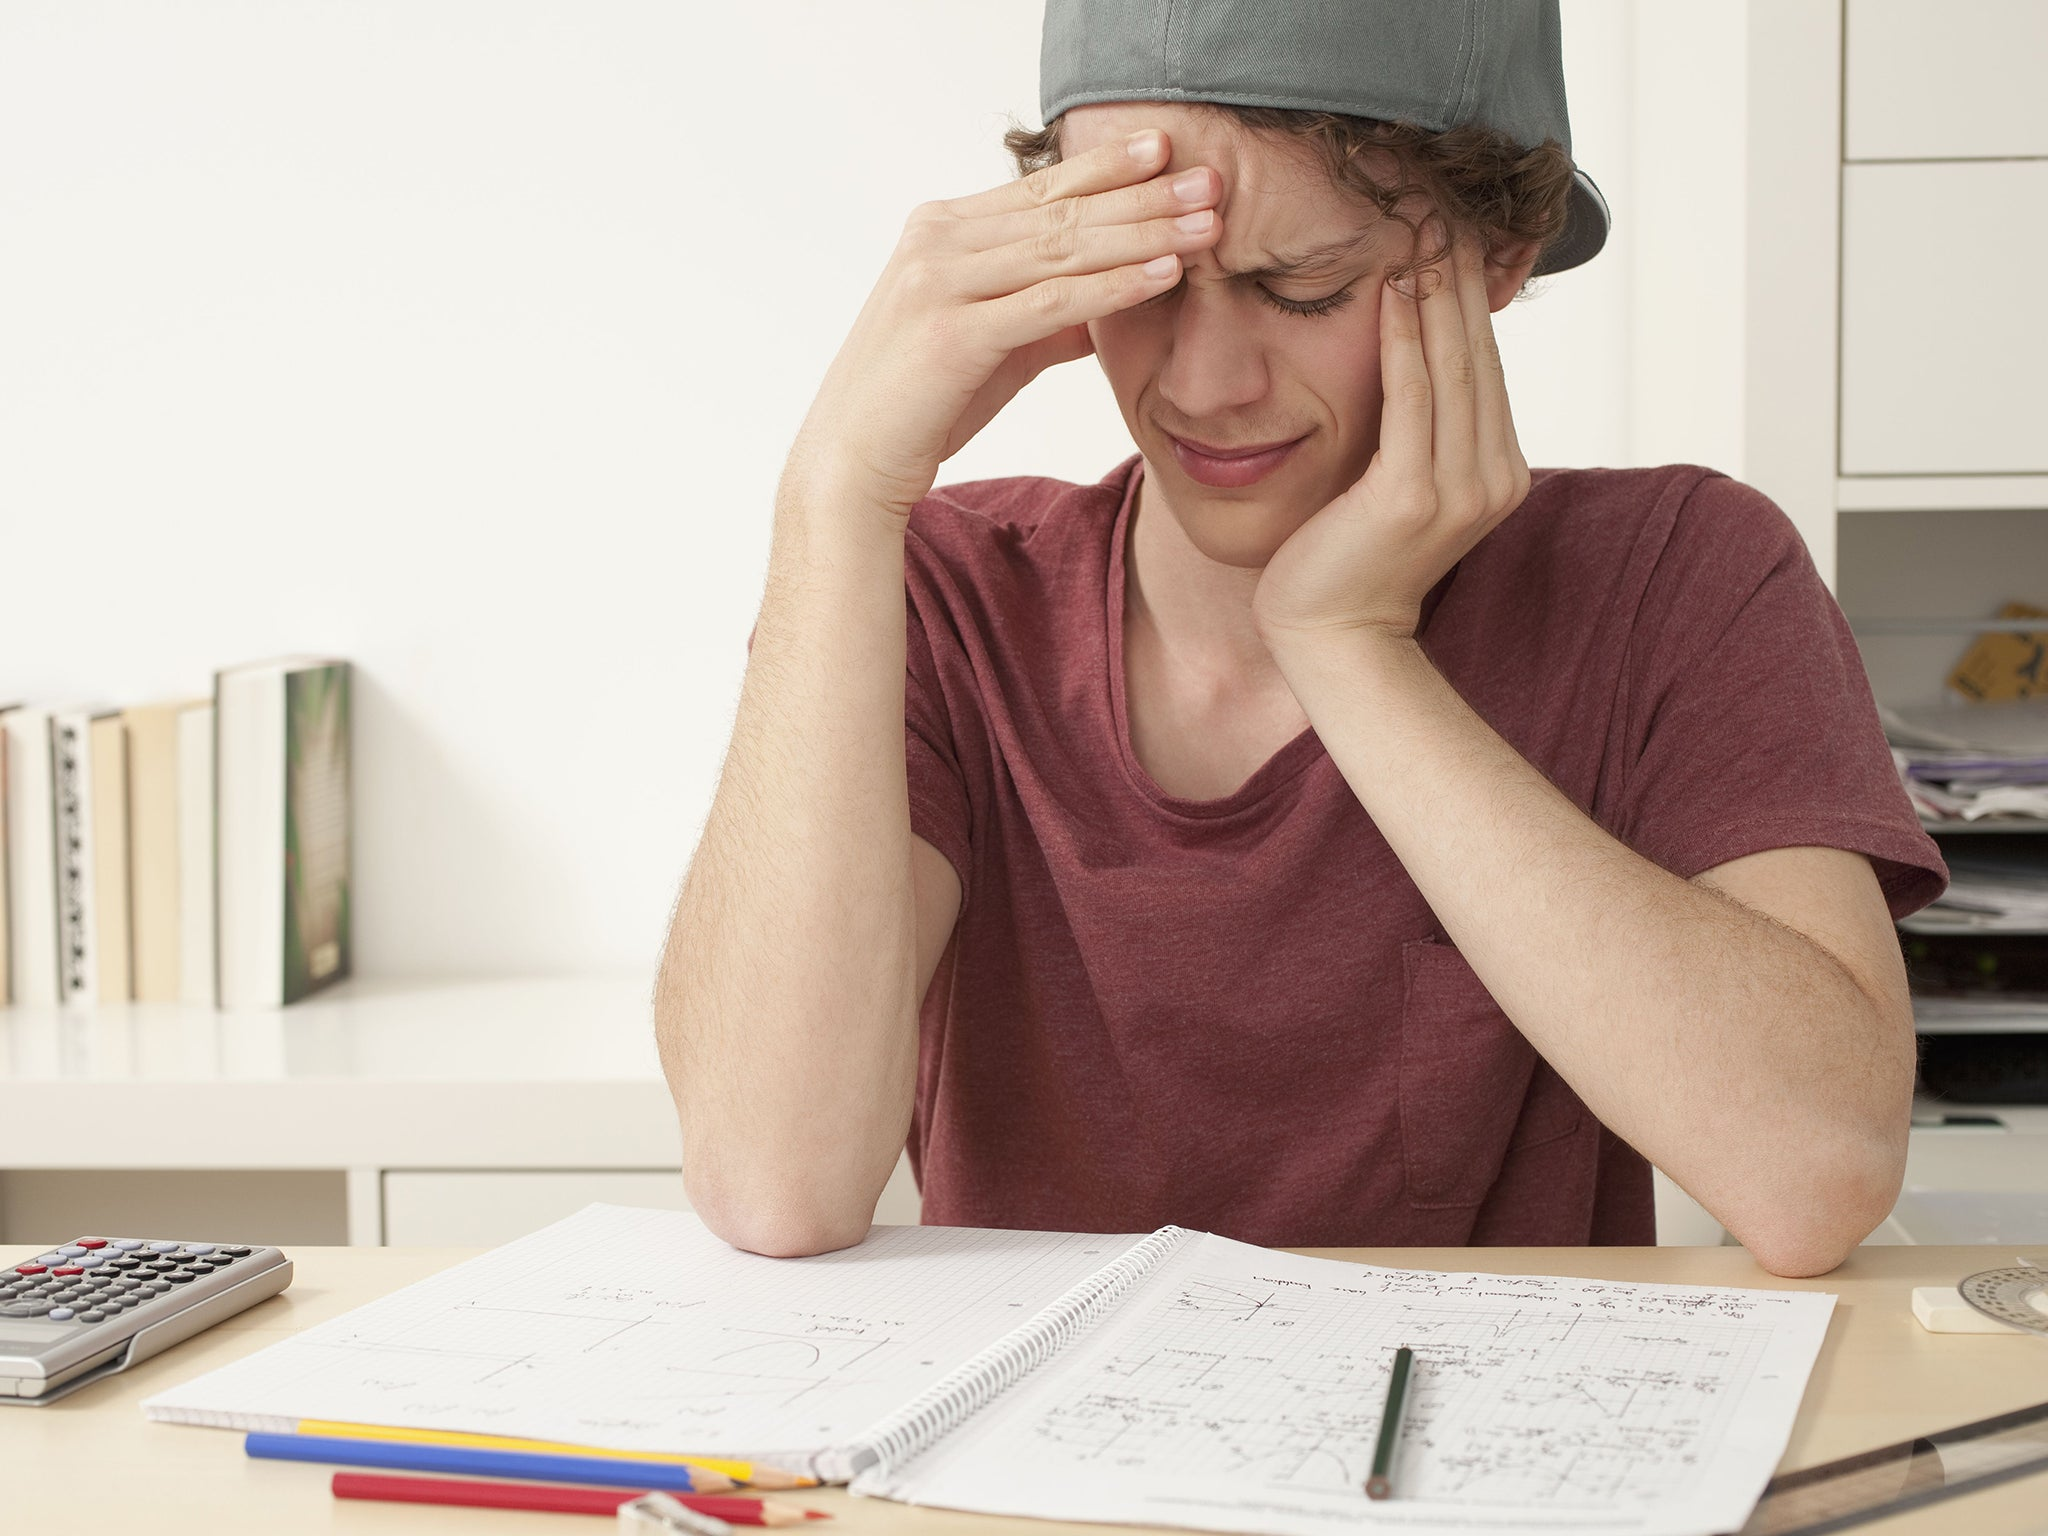 Studying effectively to ensure exam success, 4 ways how